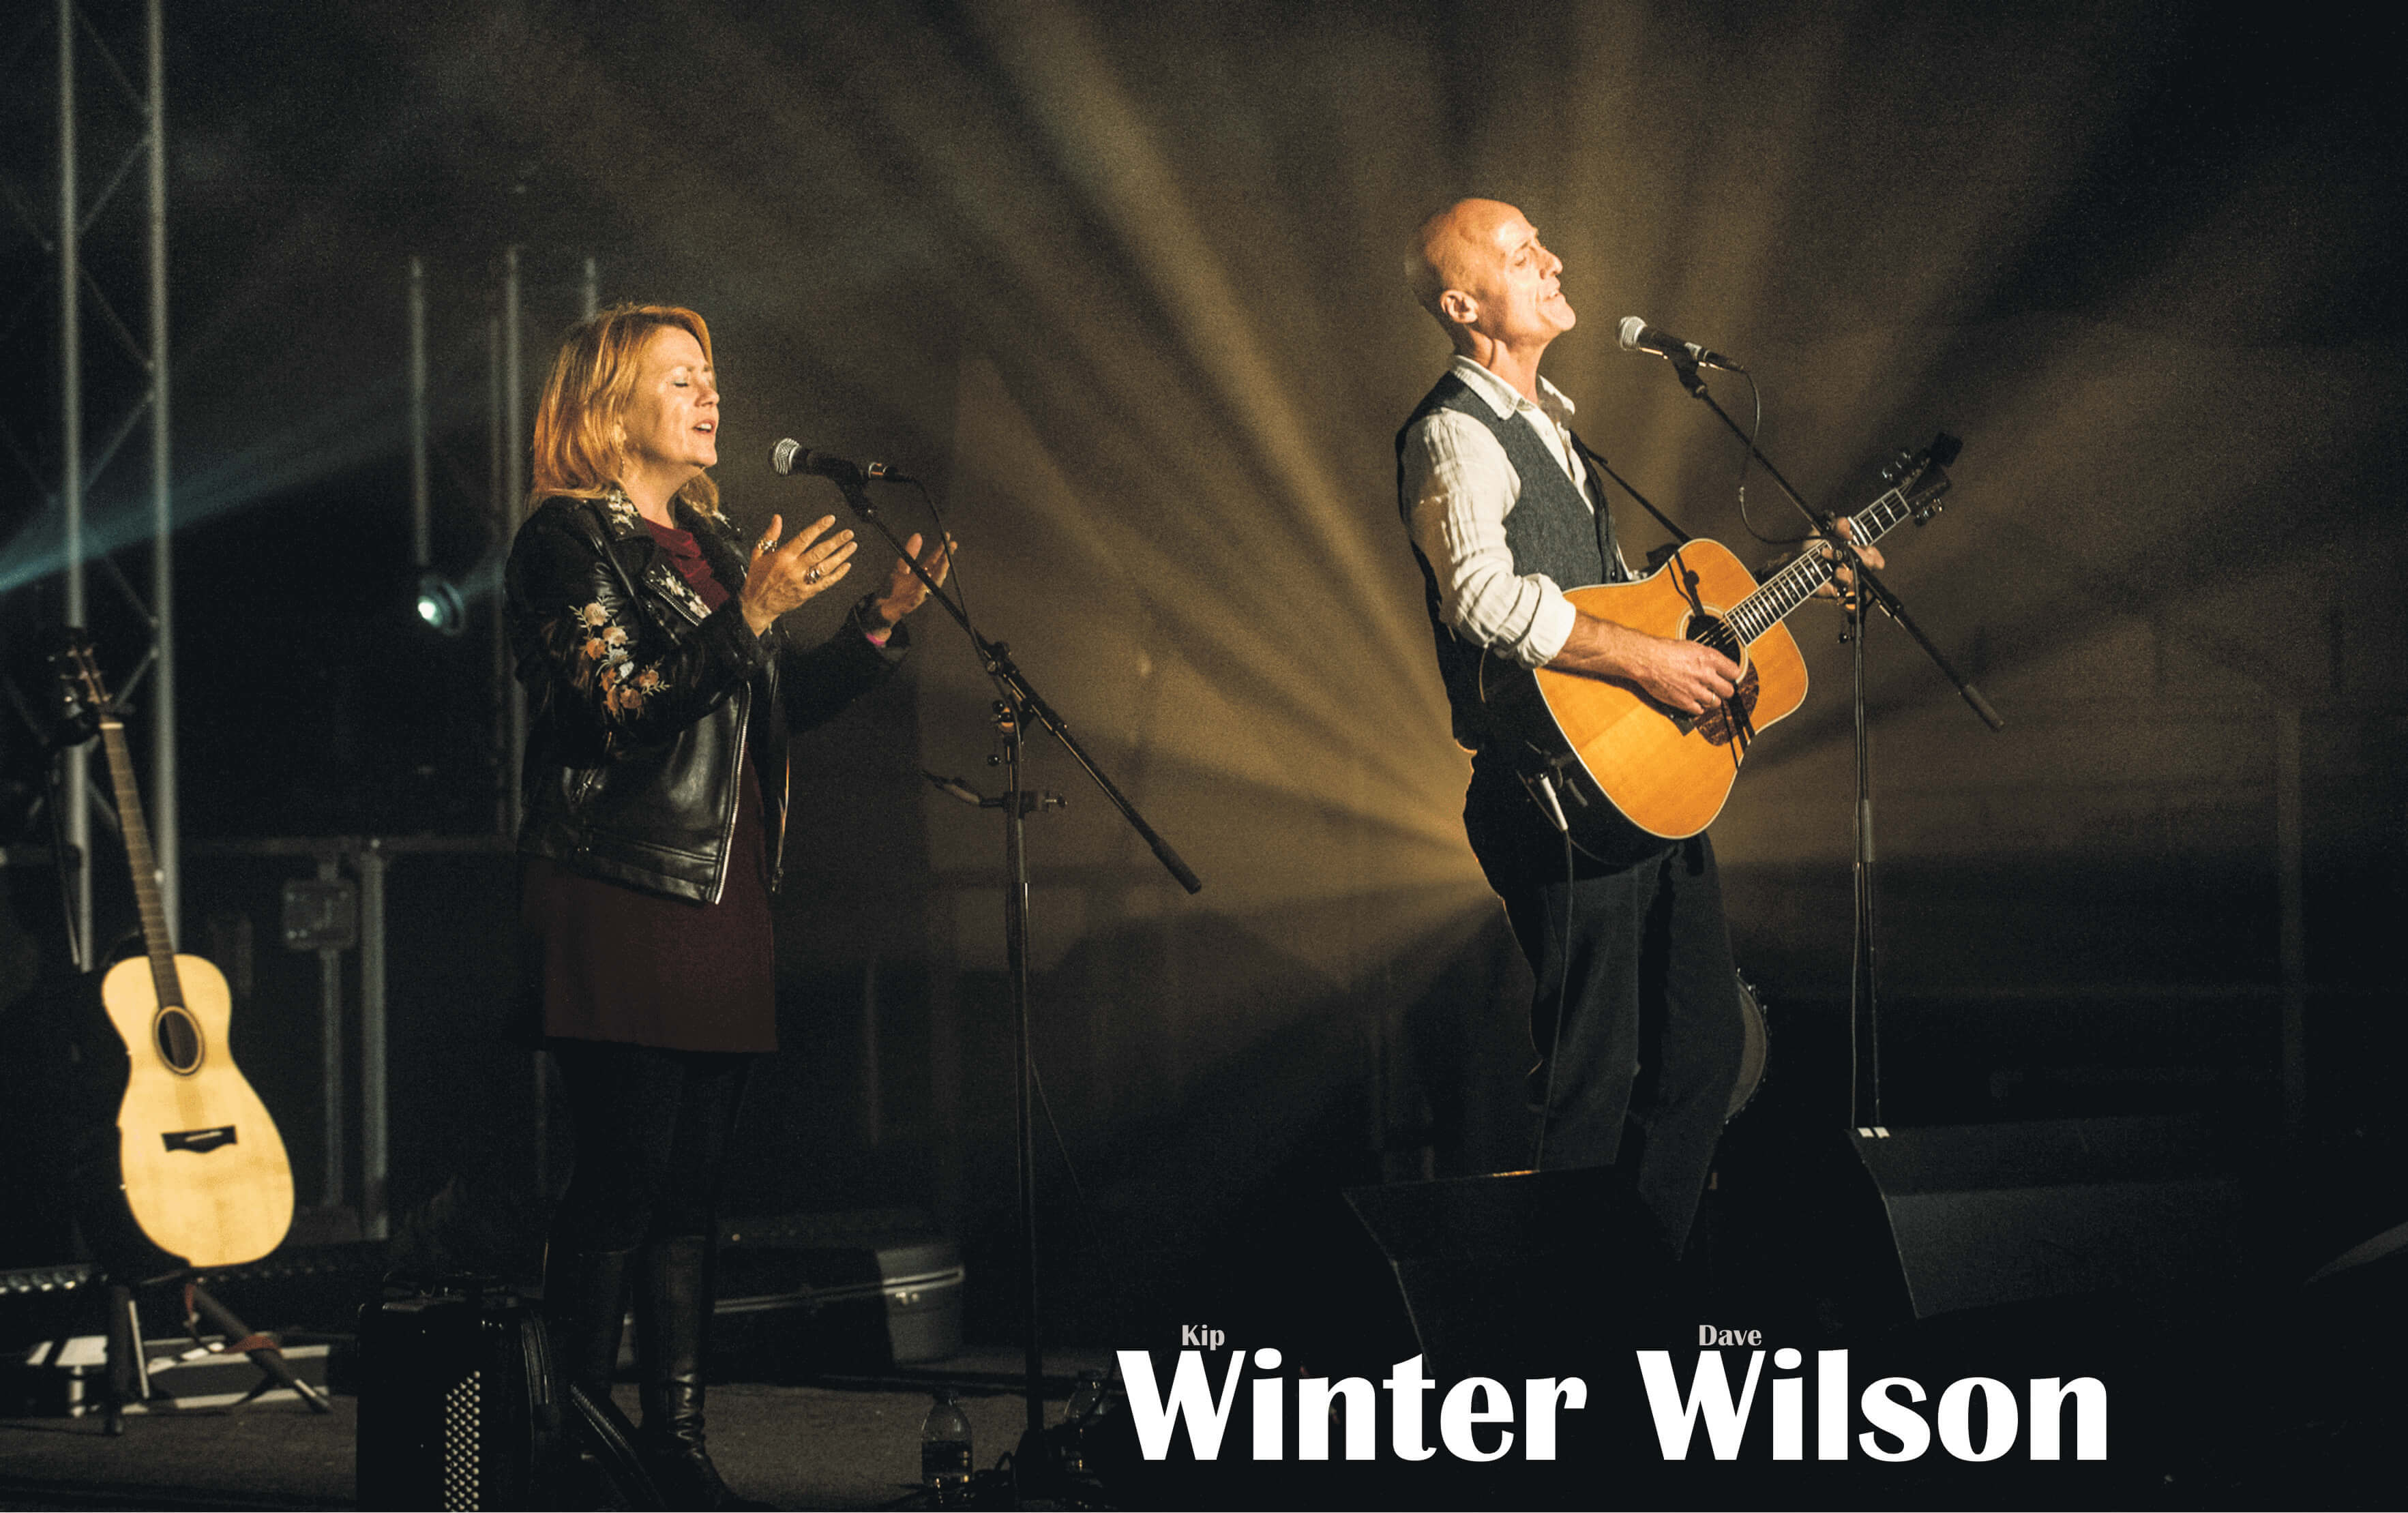 Winter Wilson in Concert